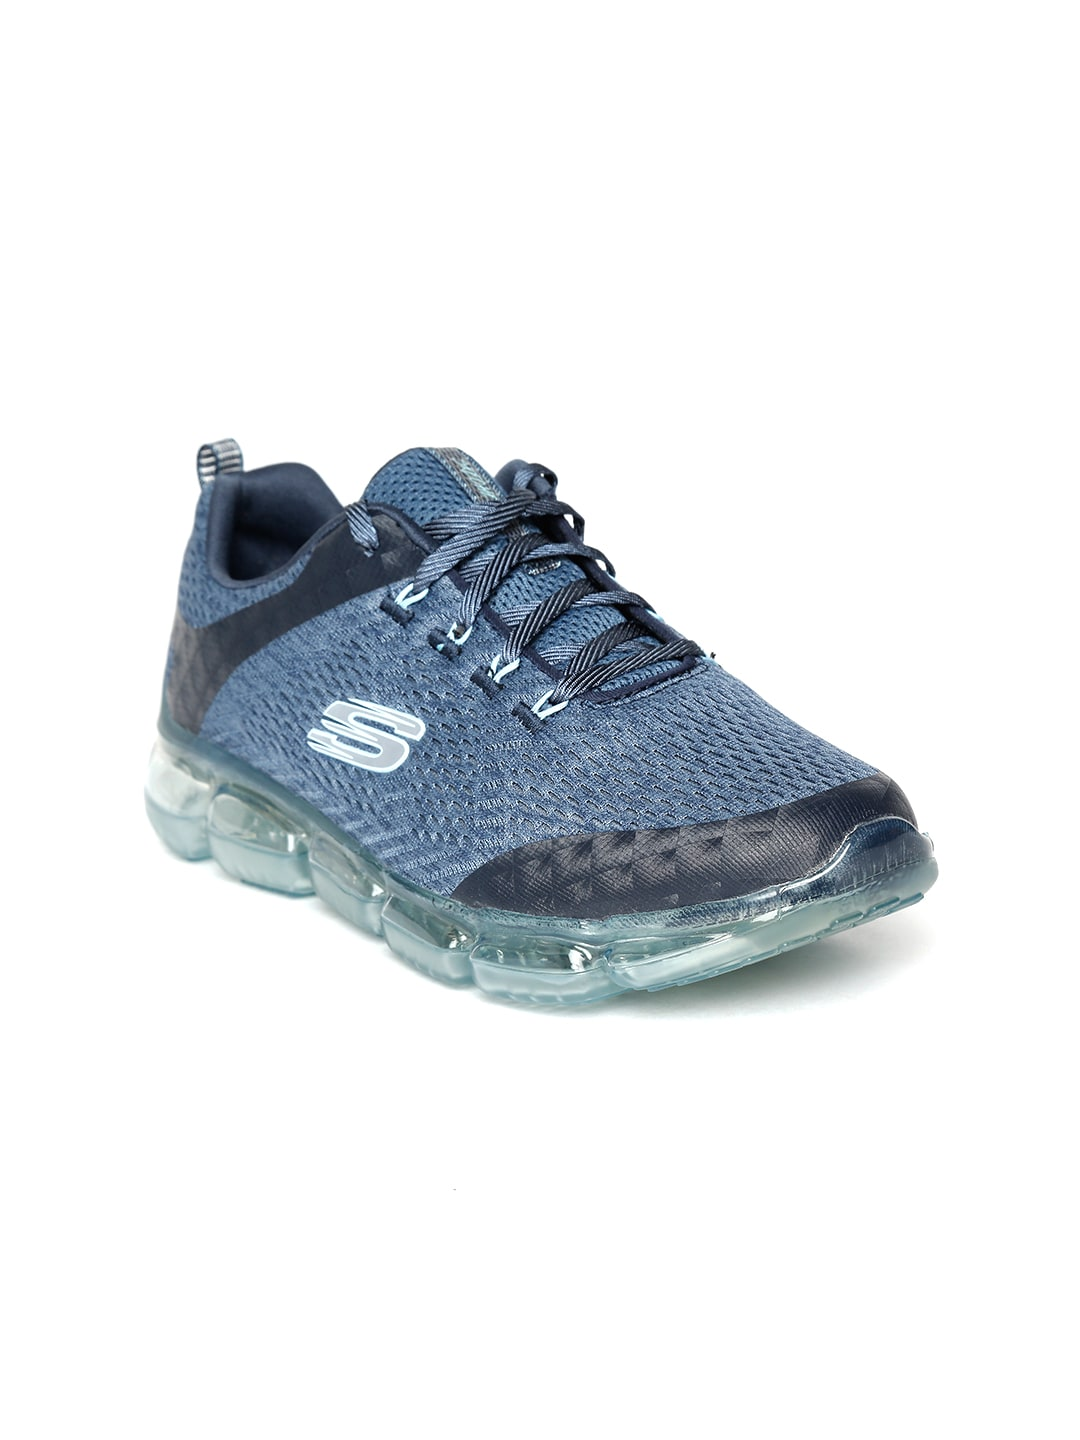 a14995efcac Skechers - Buy Skechers Footwear Online at Best Prices